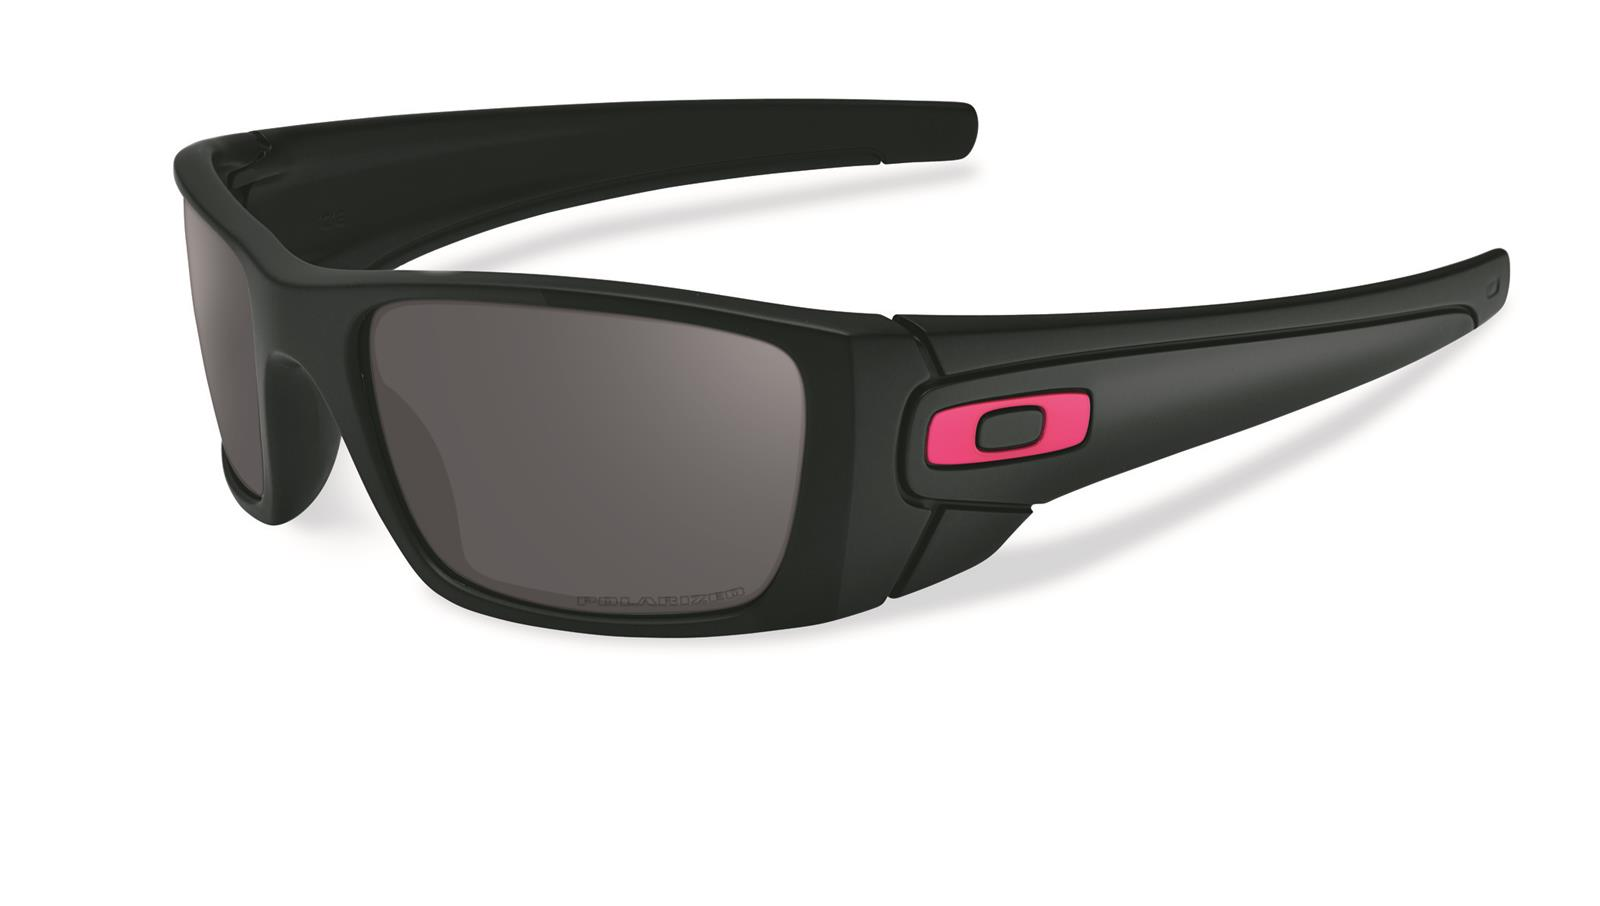 3edd78ec2a3 Oakley Fuel Cell Breast Cancer Awareness Edition Sunglasses OO9096-80 -  Free Shipping on Orders Over  99 at Summit Racing